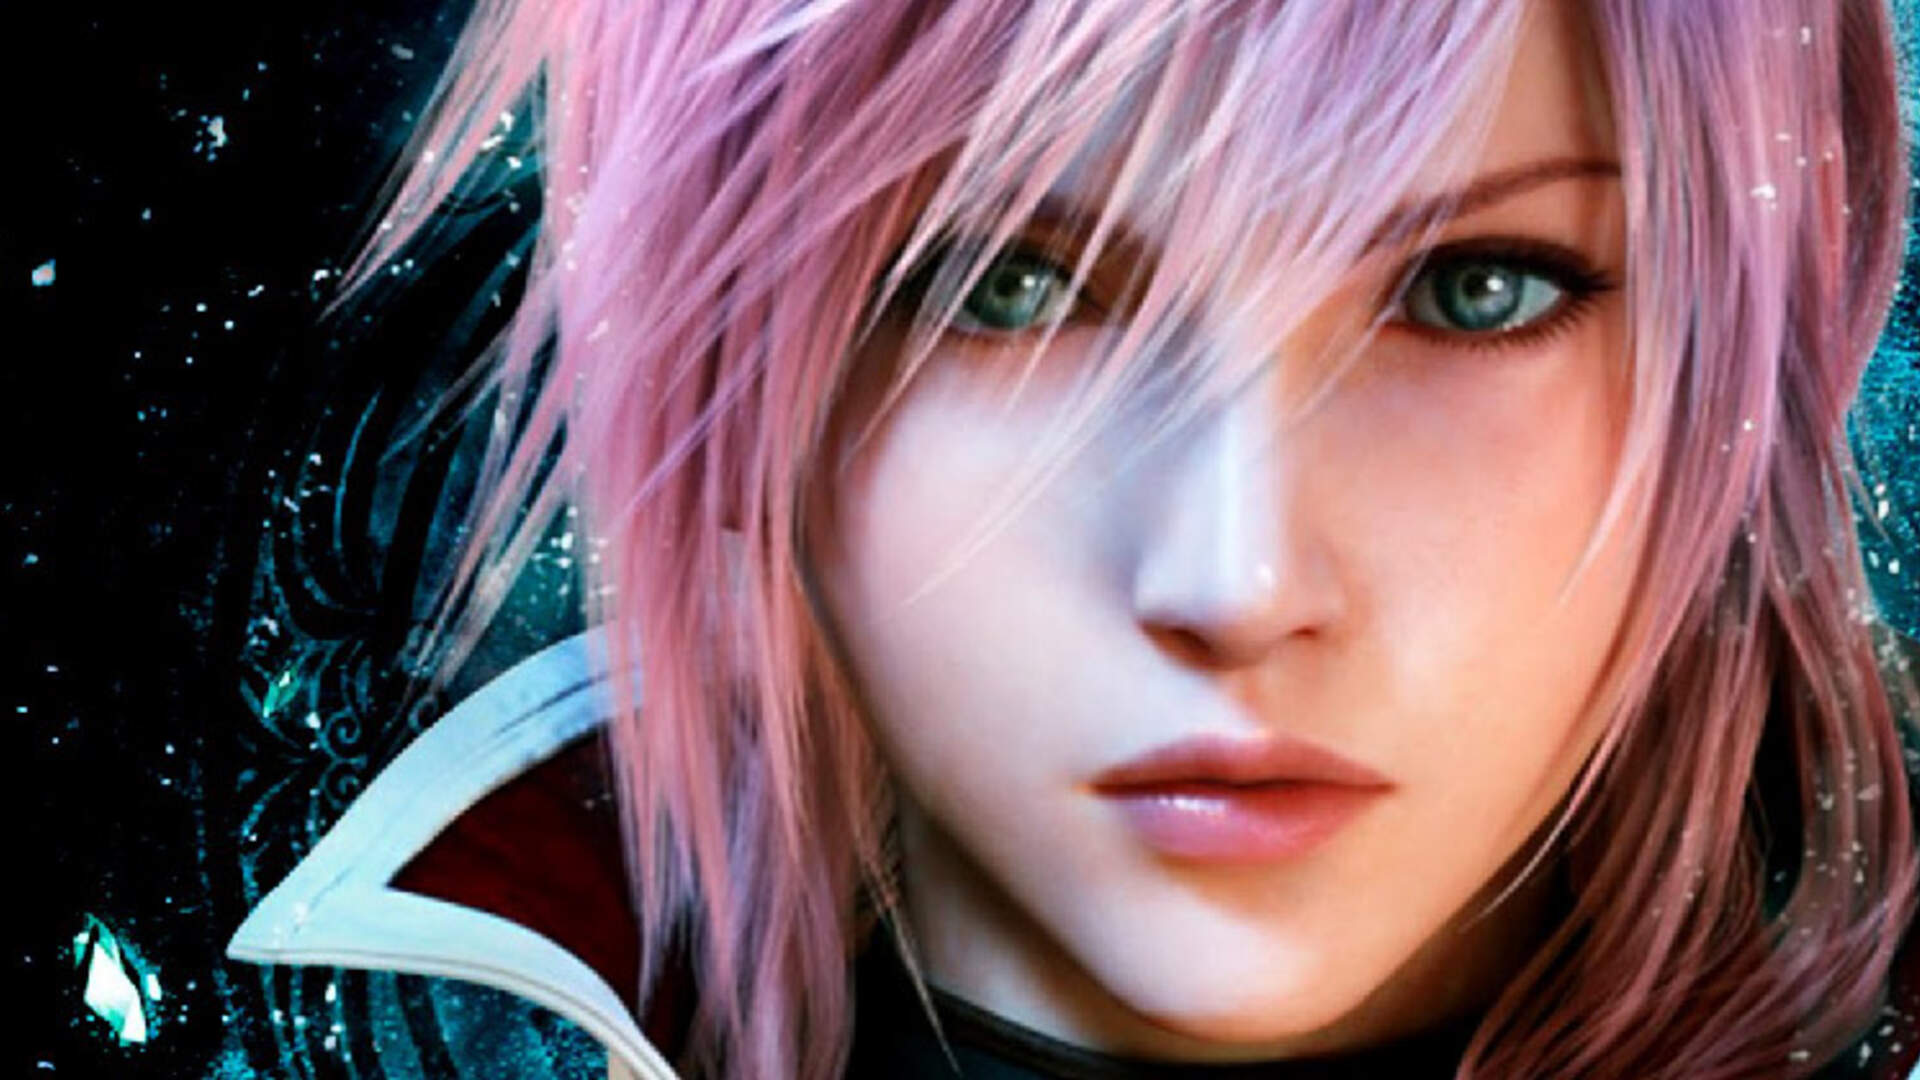 It S Time To Admit Final Fantasy Xiii Wasn T Actually That Bad